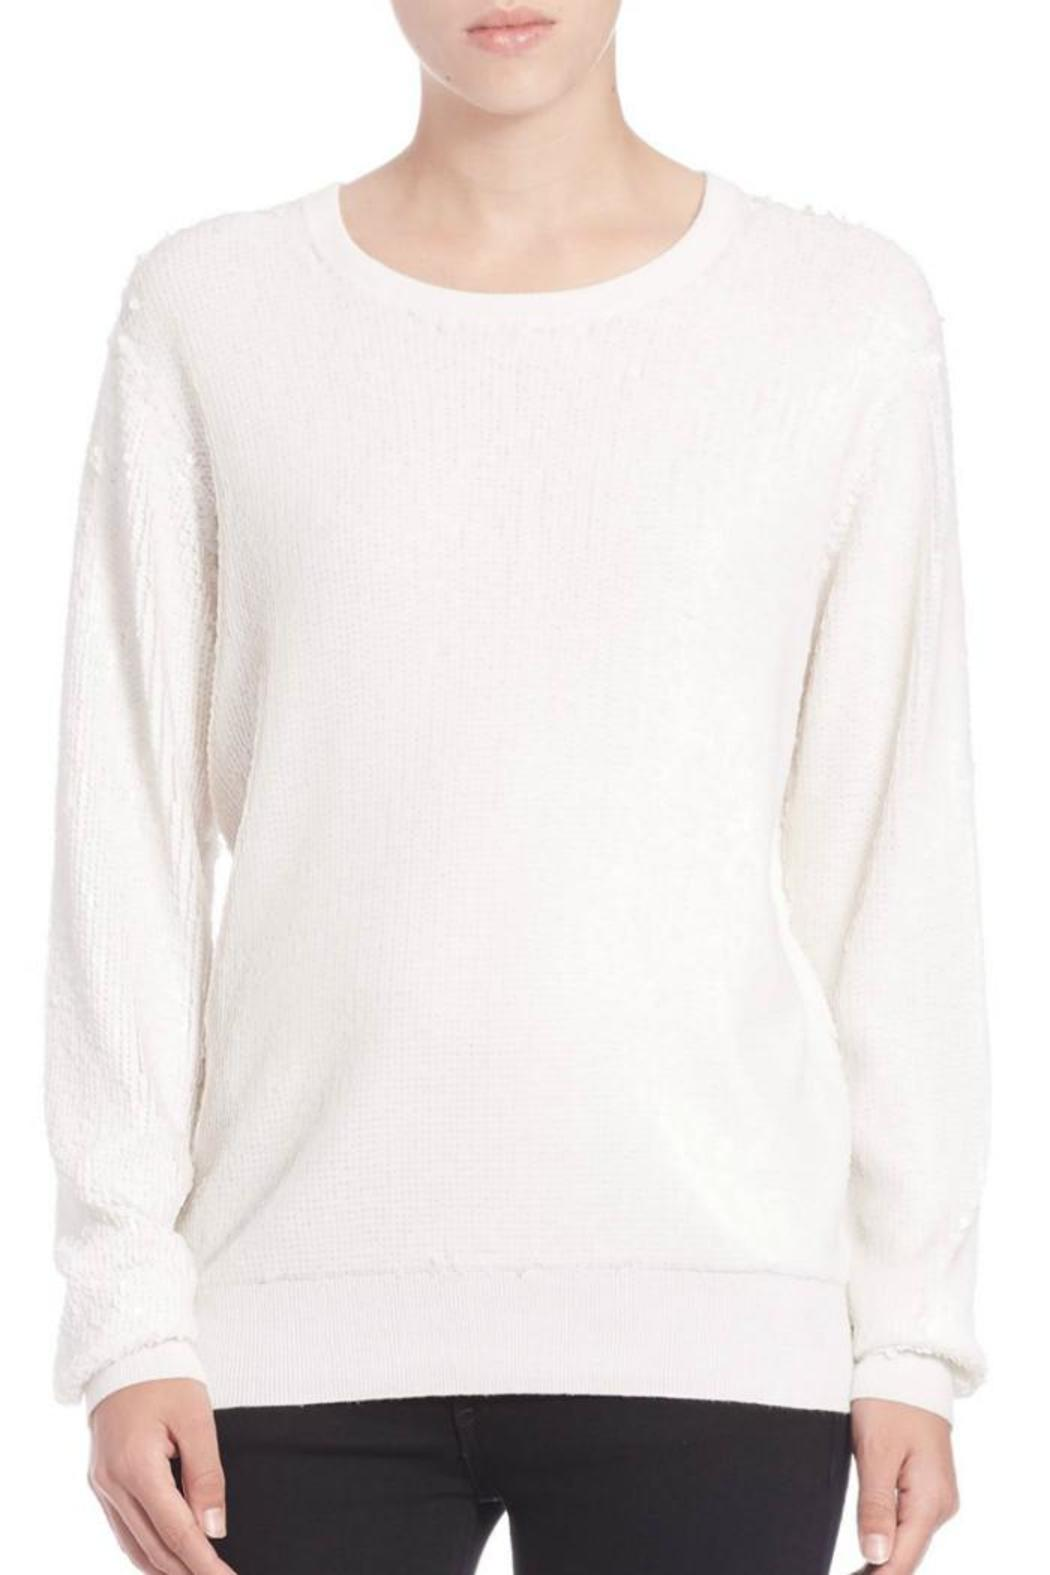 Equipment Shane Sequin Sweater from Canada by Era Style Loft ...